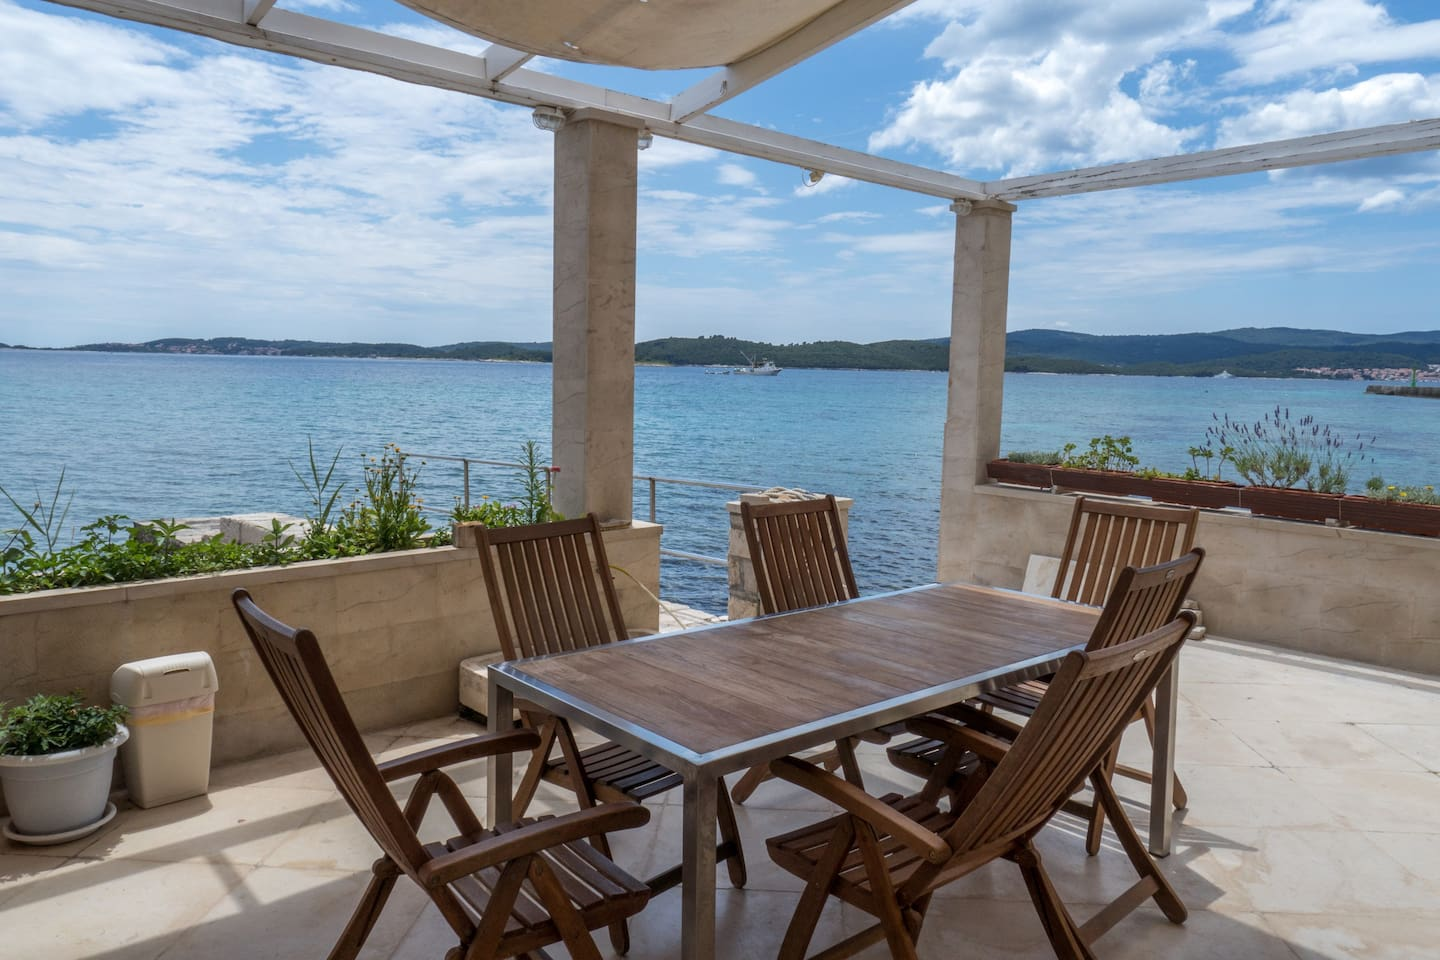 This covered terrace with sea view is perfect for your morning coffee